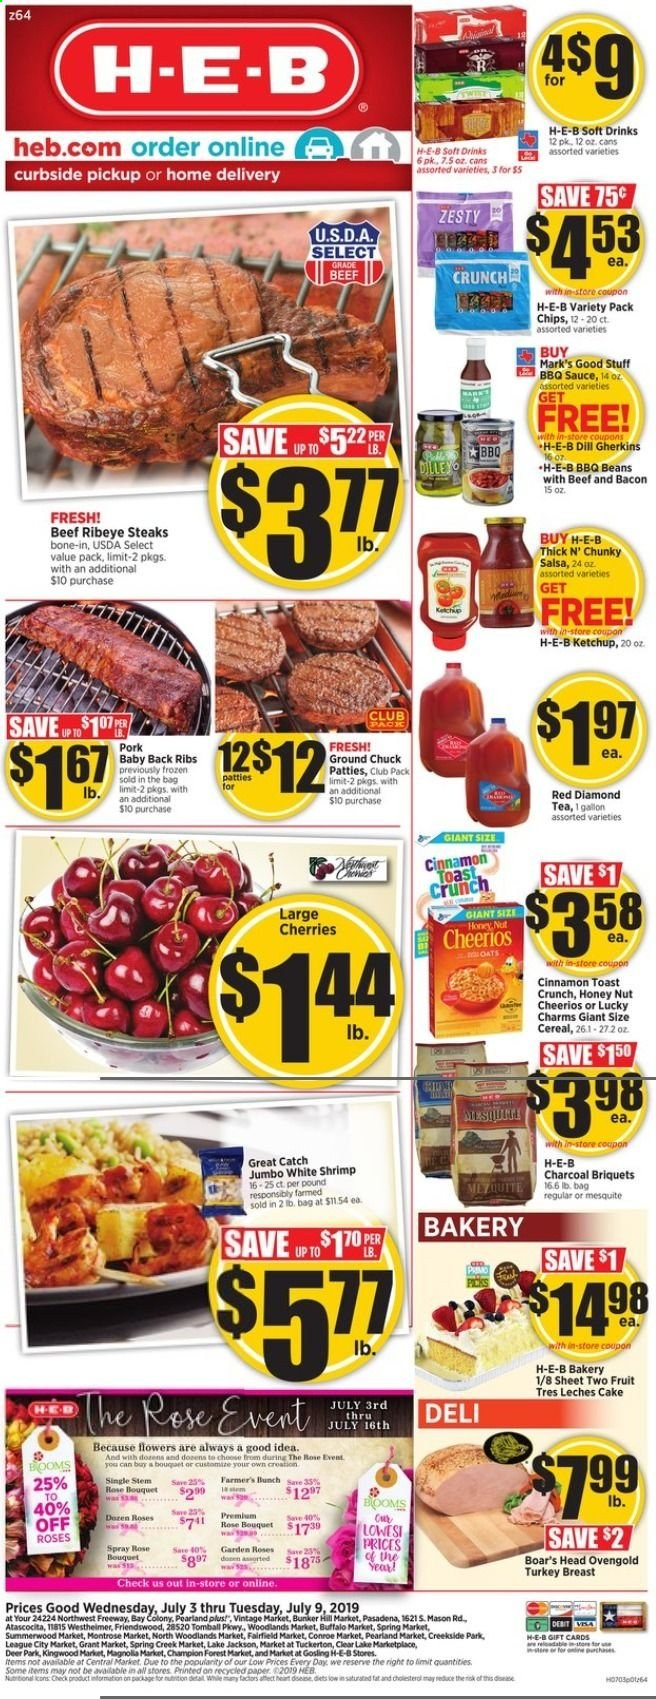 H-E-B Flyer  - 07.03.2019 - 07.09.2019. Page 1.